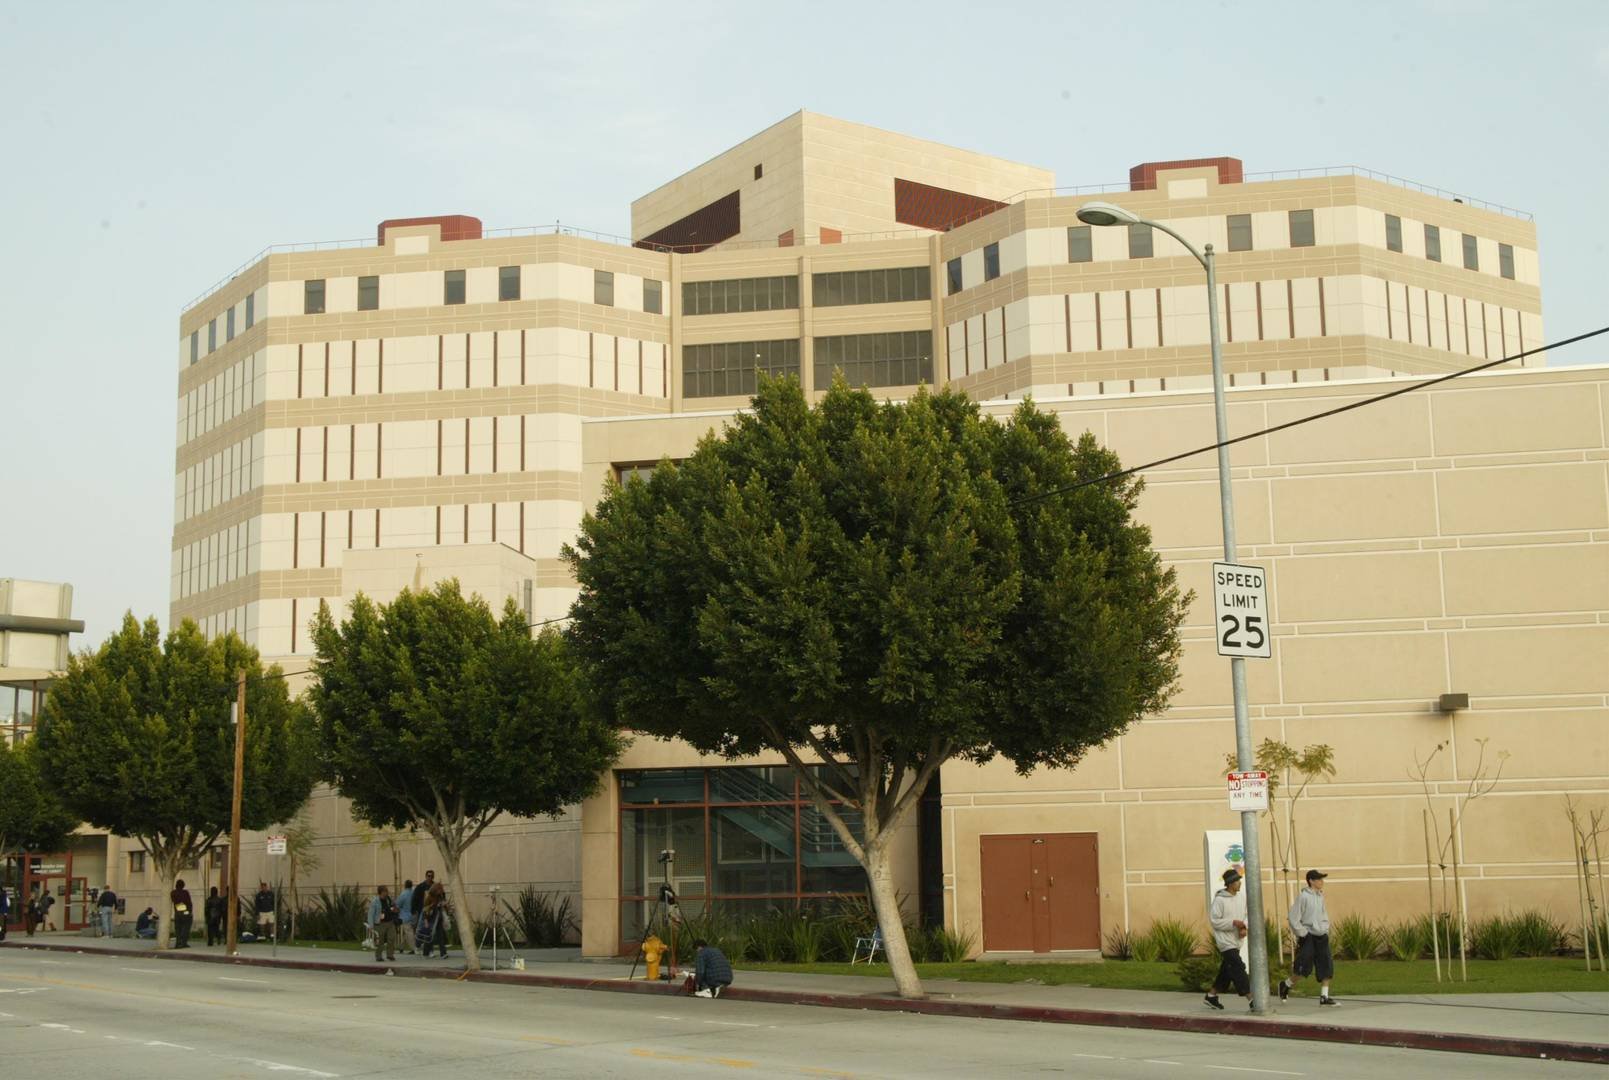 L.A. County Jail